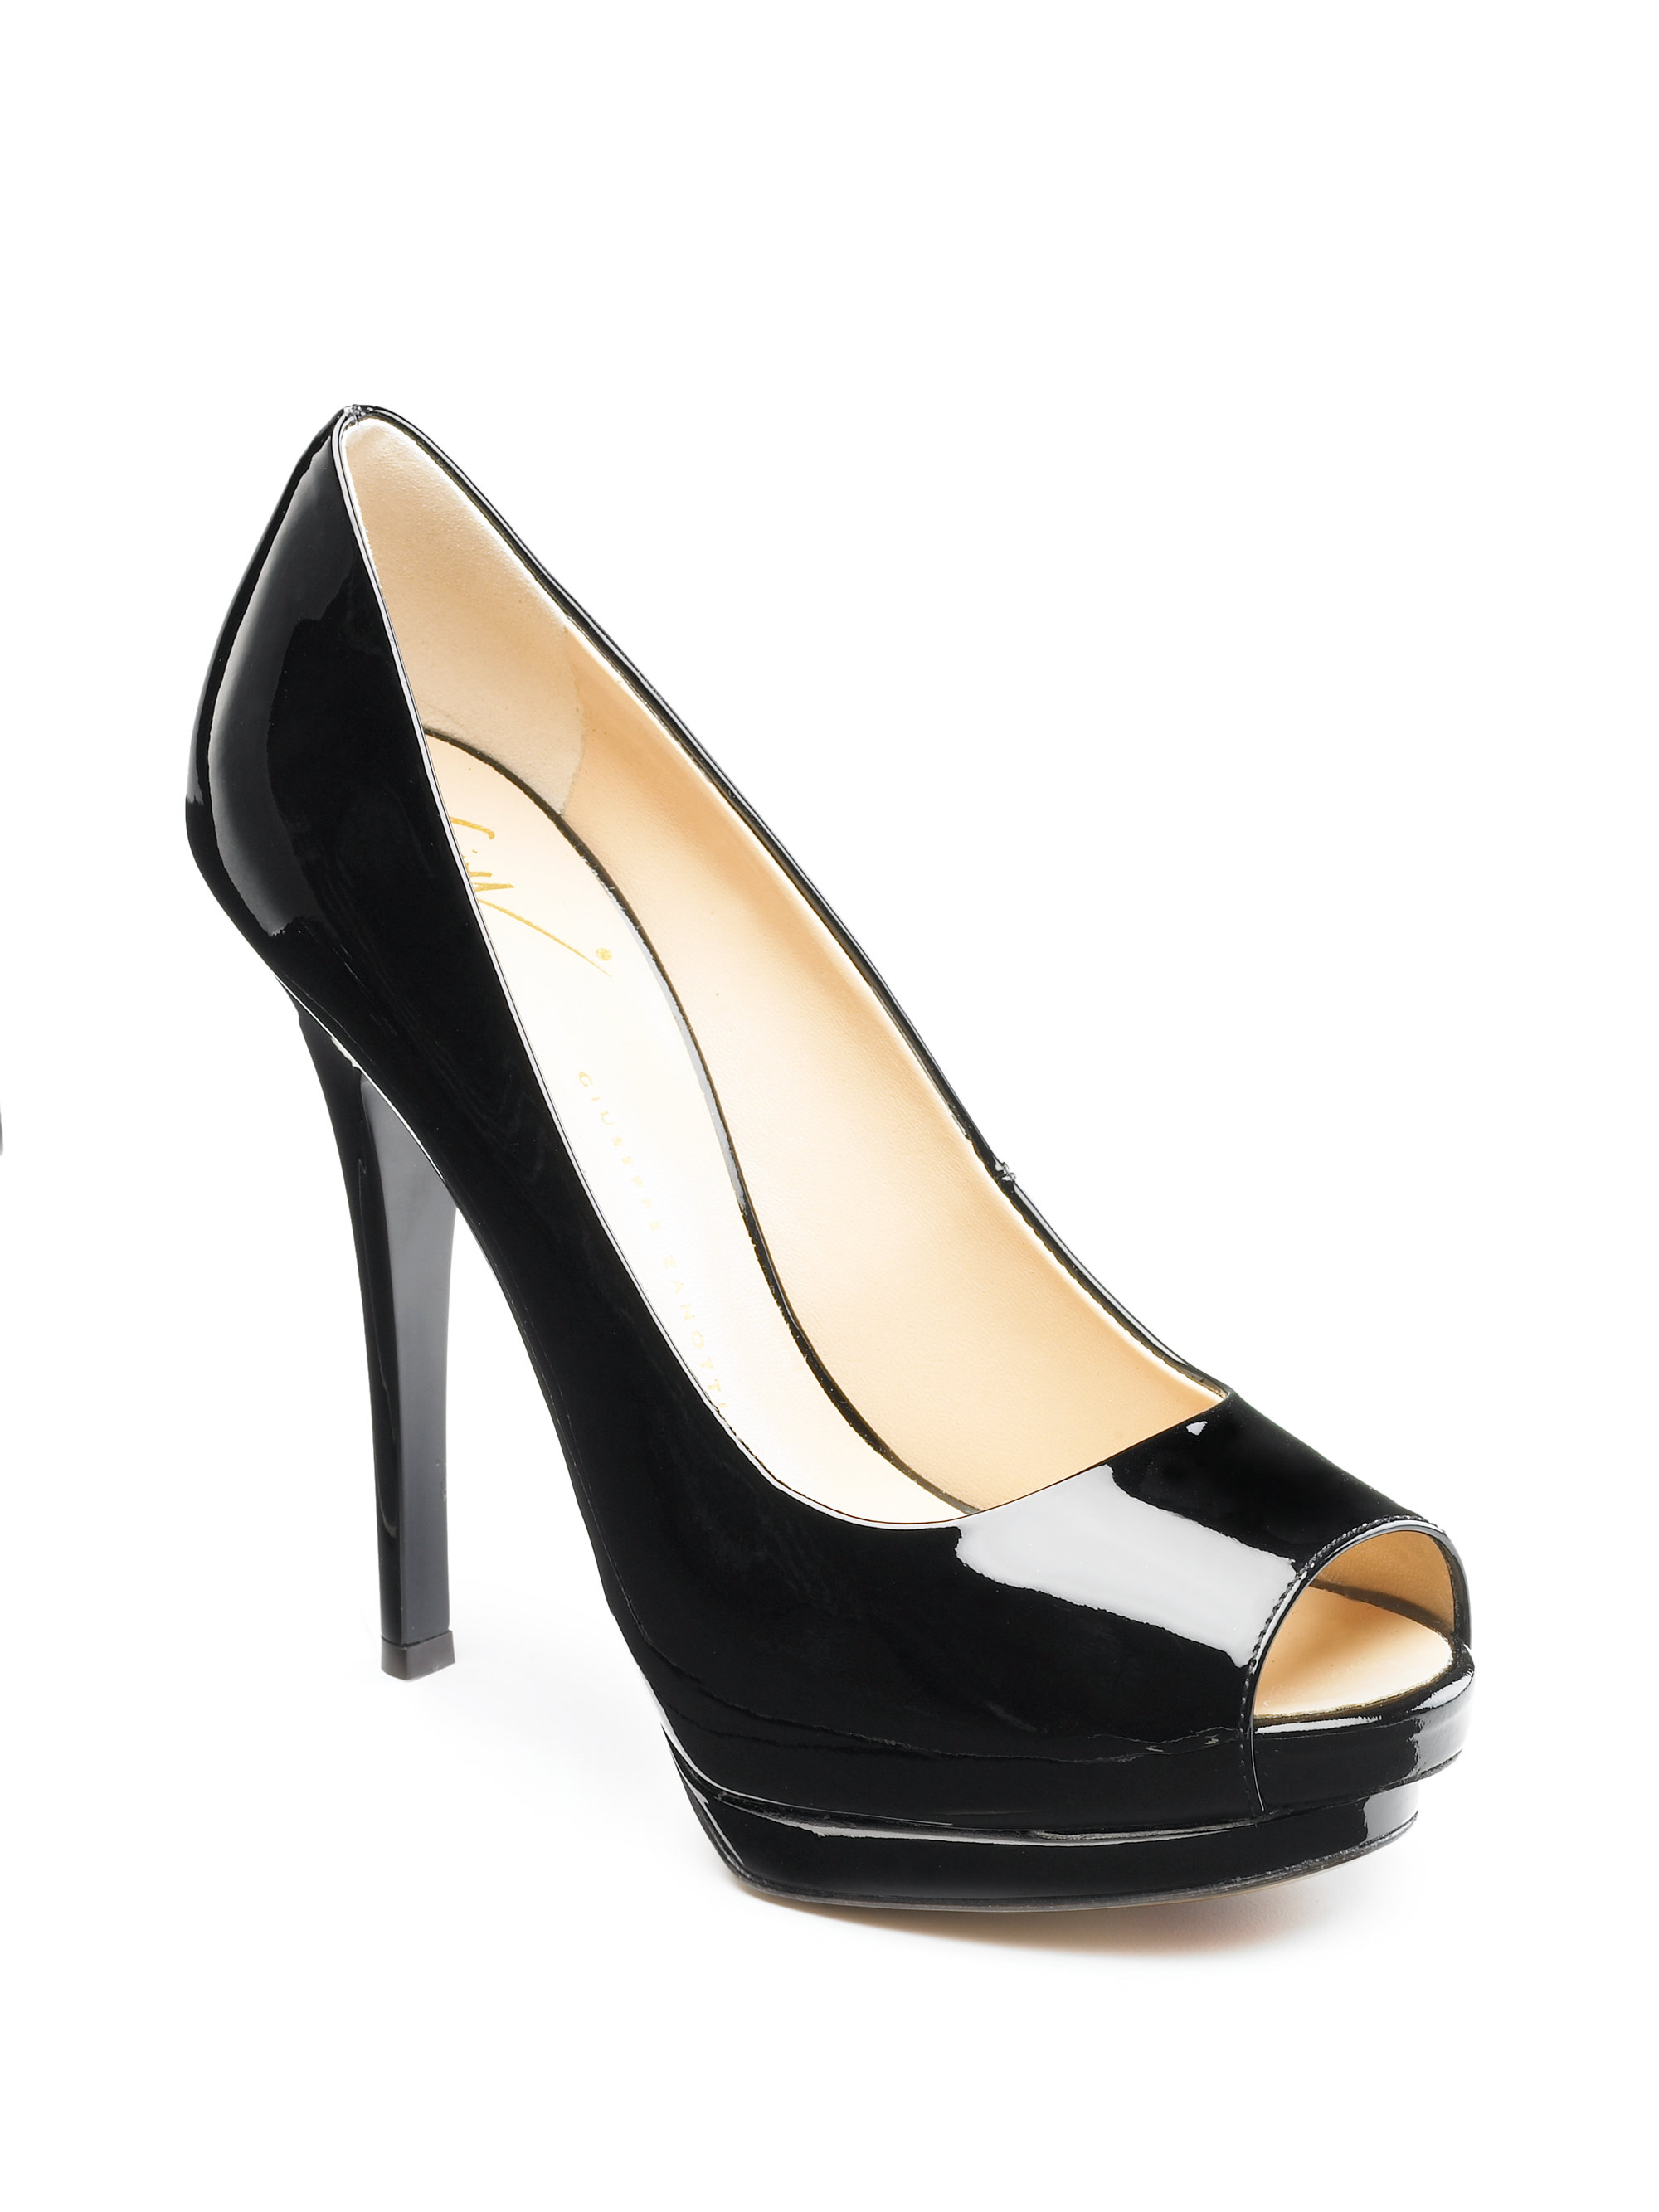 get authentic for sale Giuseppe Zanotti Patent Peep-Toe Pumps buy cheap factory outlet rGfbCJJq